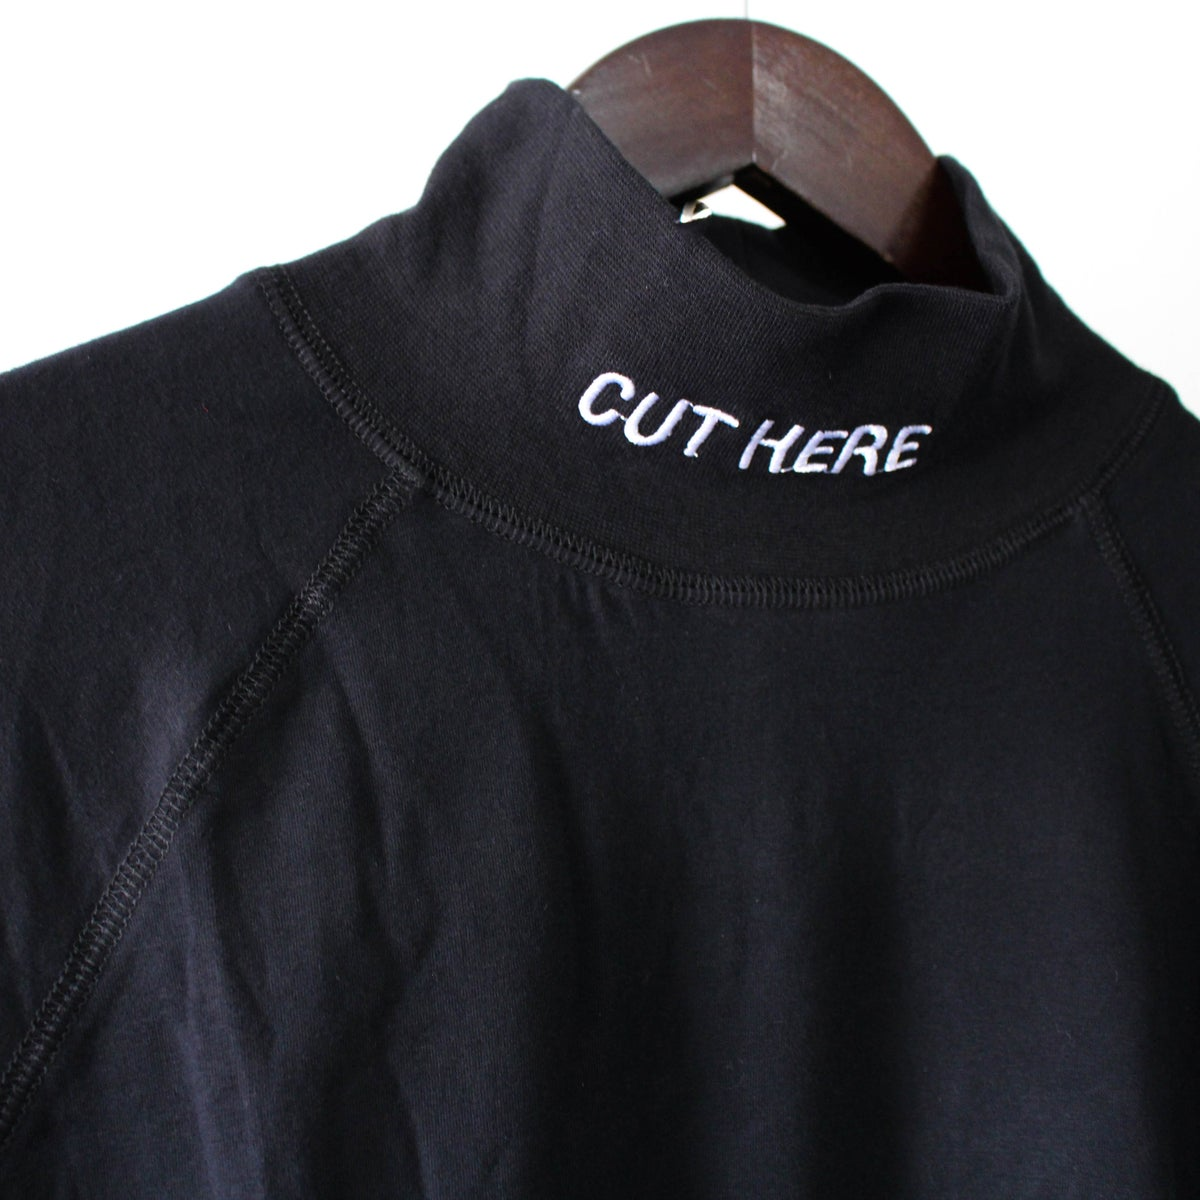 Image of Cut here Mock Turtleneck